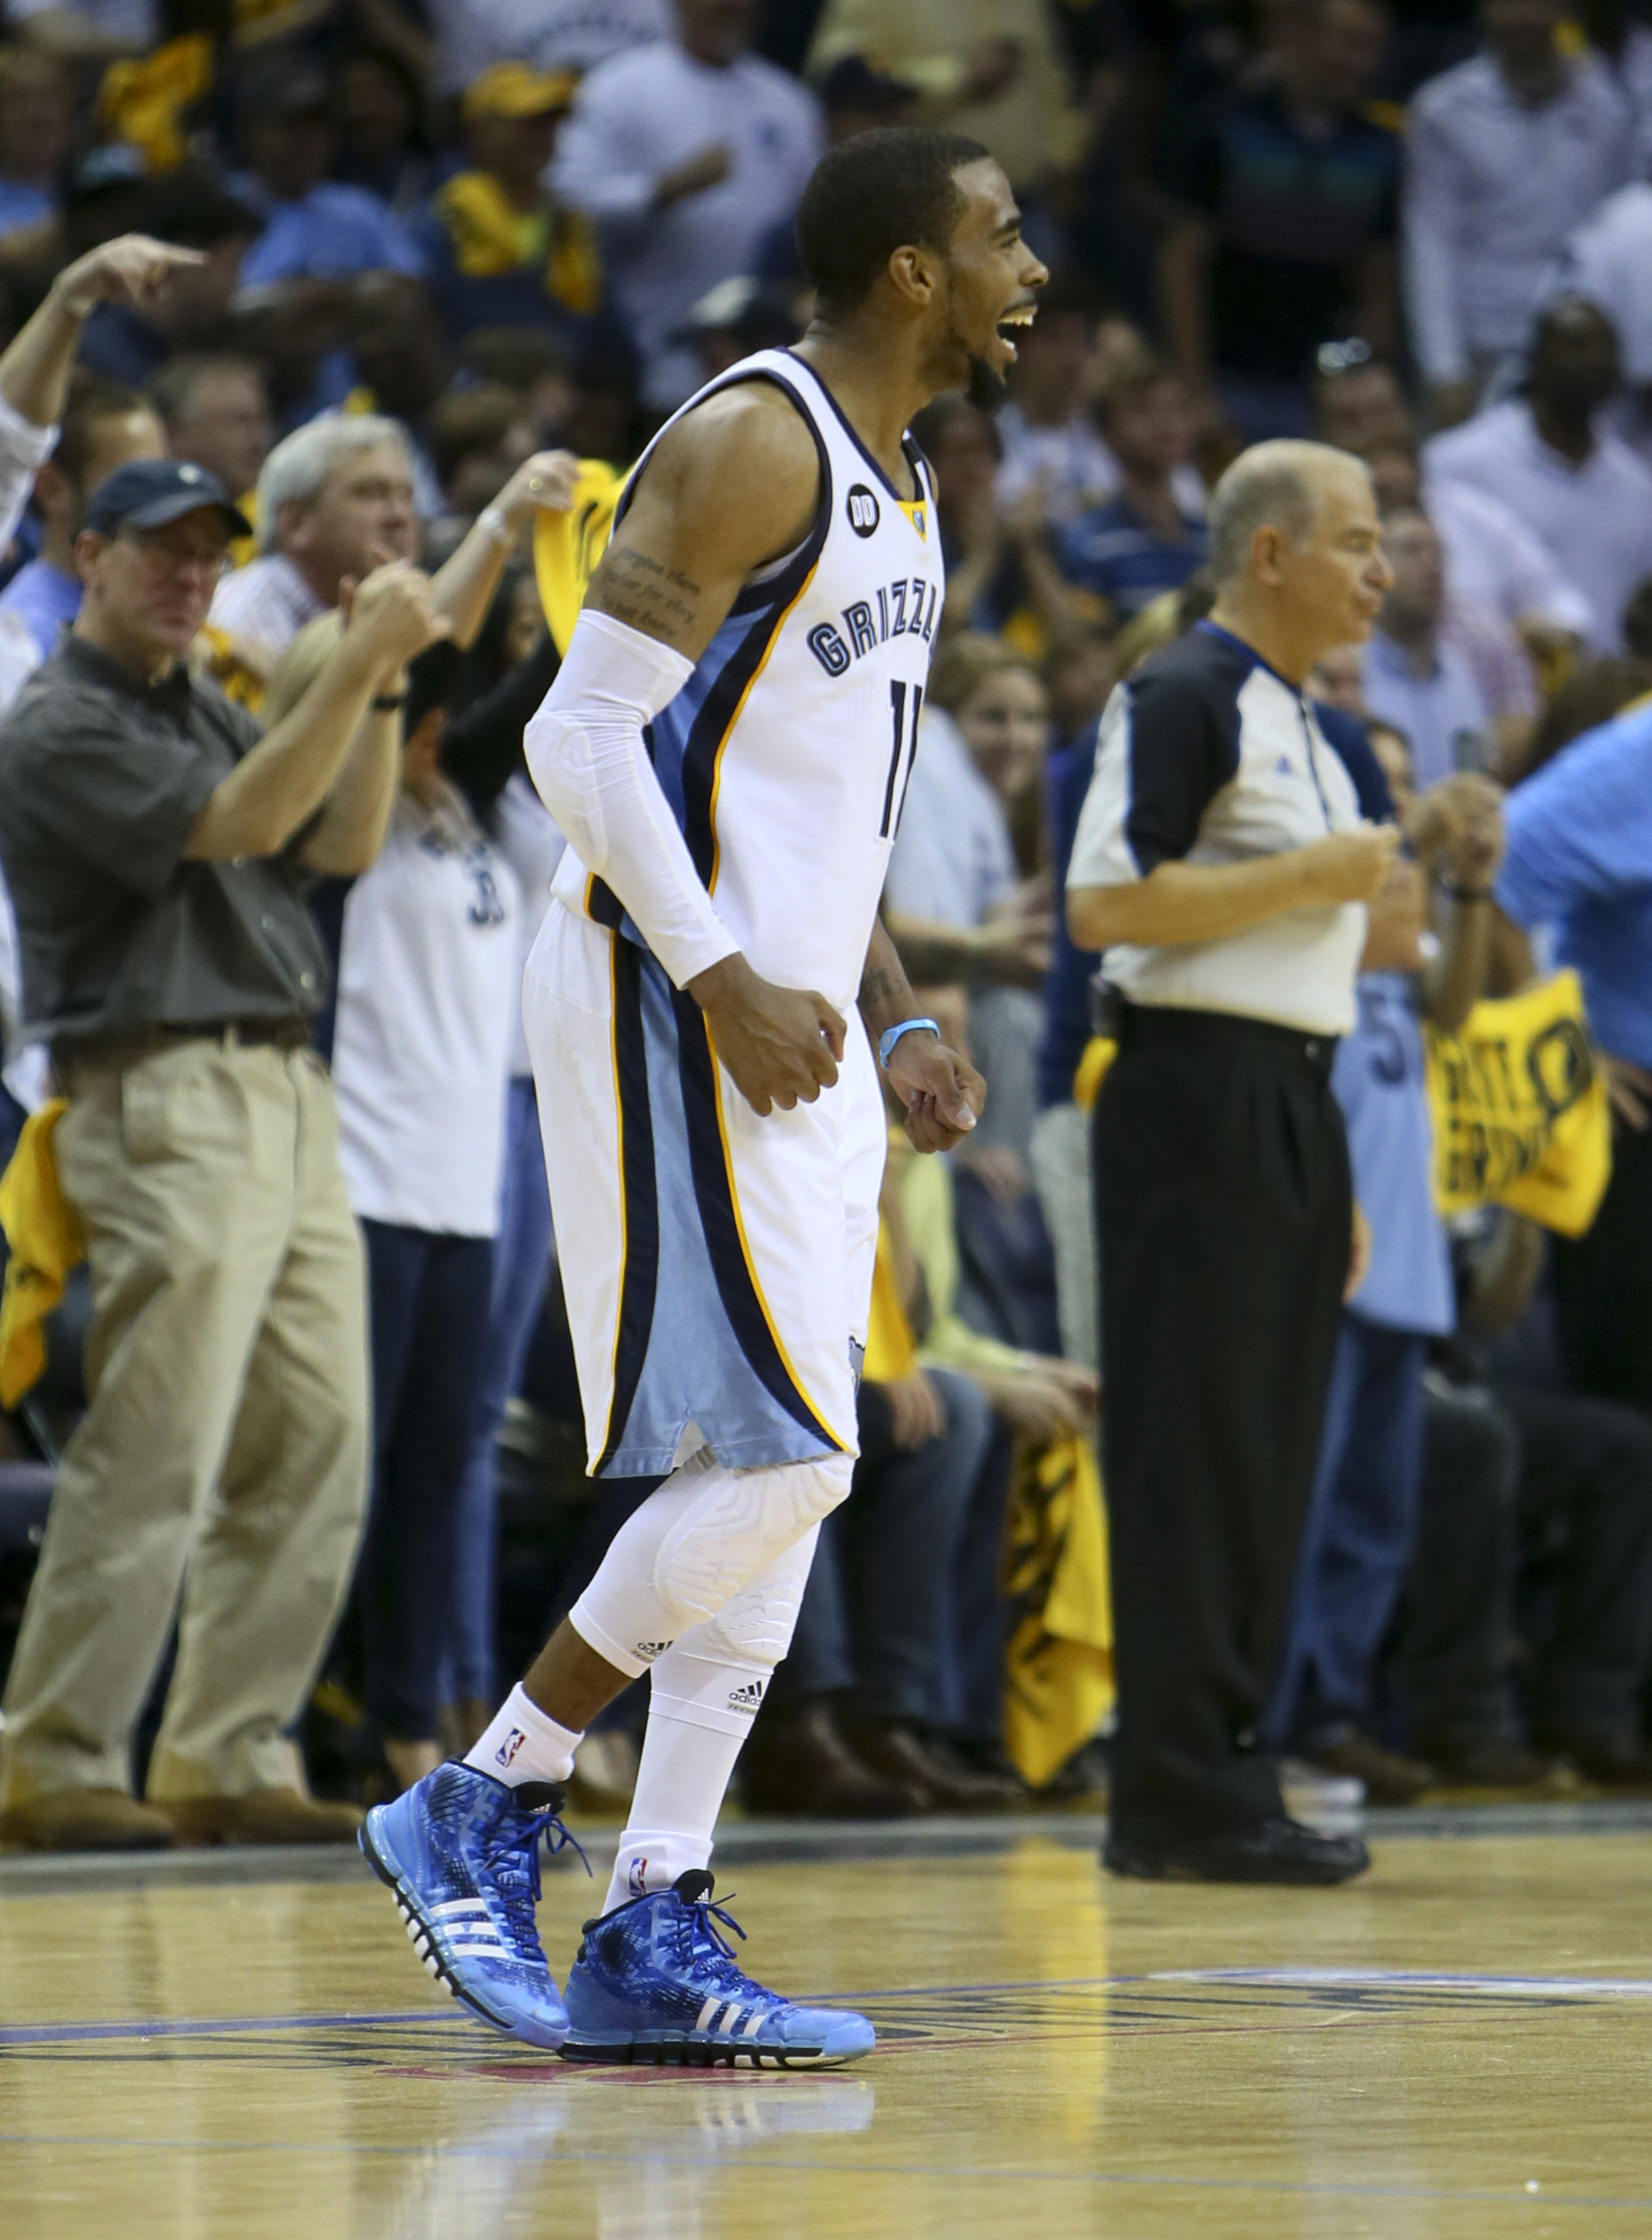 NBA Playoff scores: Heat, Grizzlies advance with wins